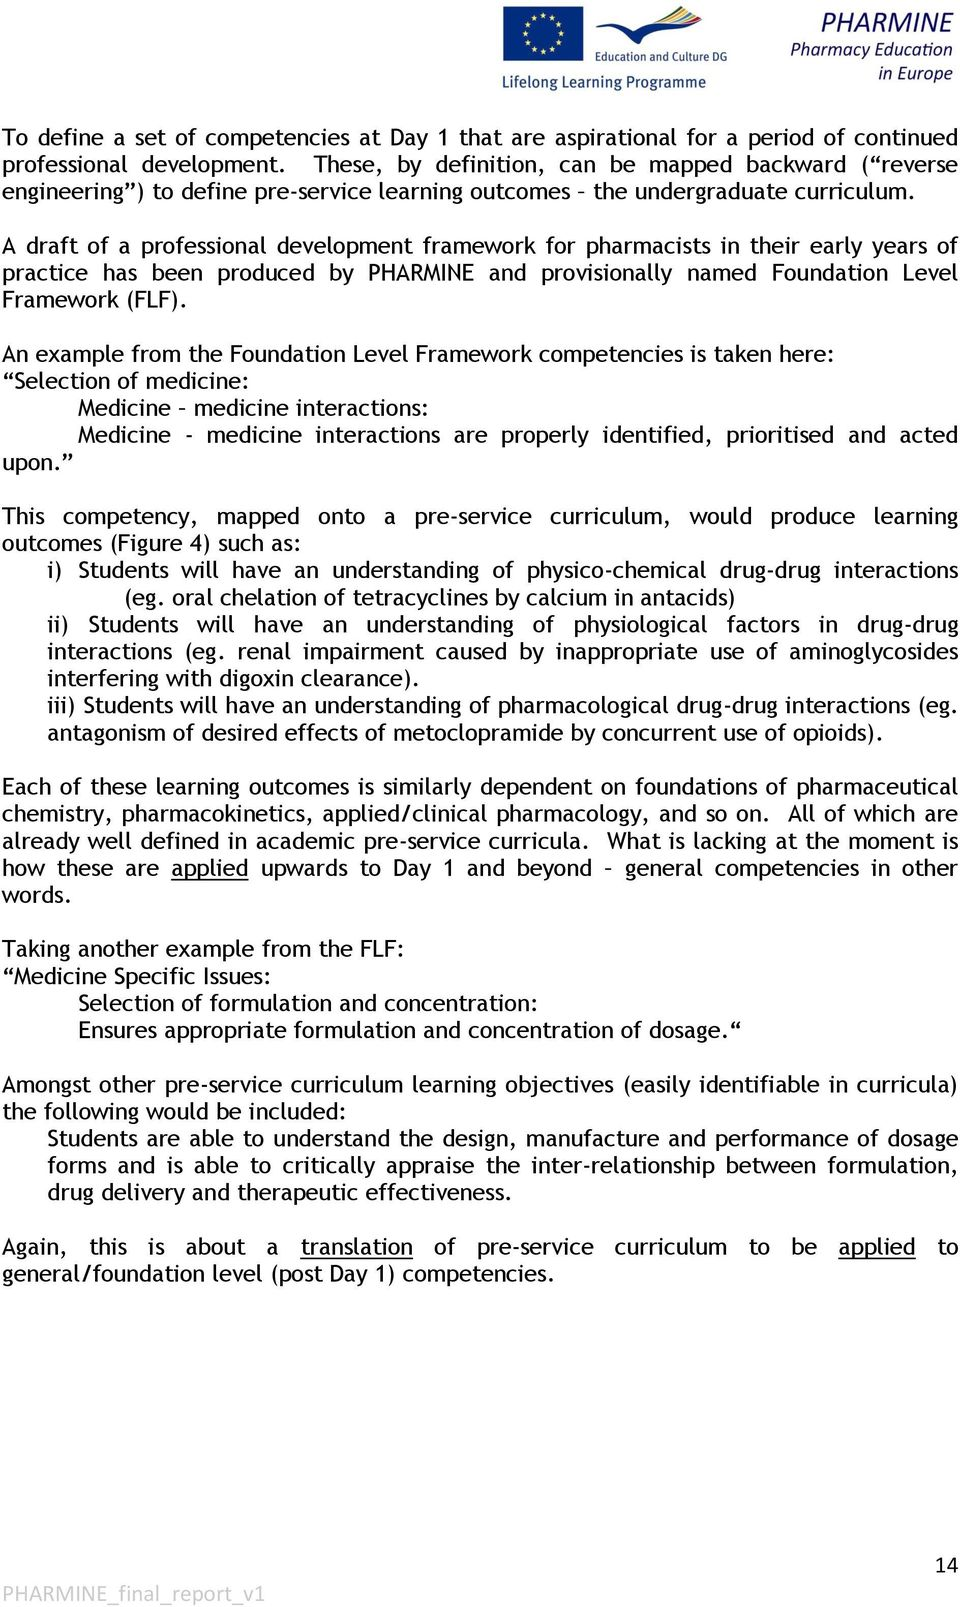 A draft of a professional development framework for pharmacists in their early years of practice has been produced by PHARMINE and provisionally named Foundation Level Framework (FLF).